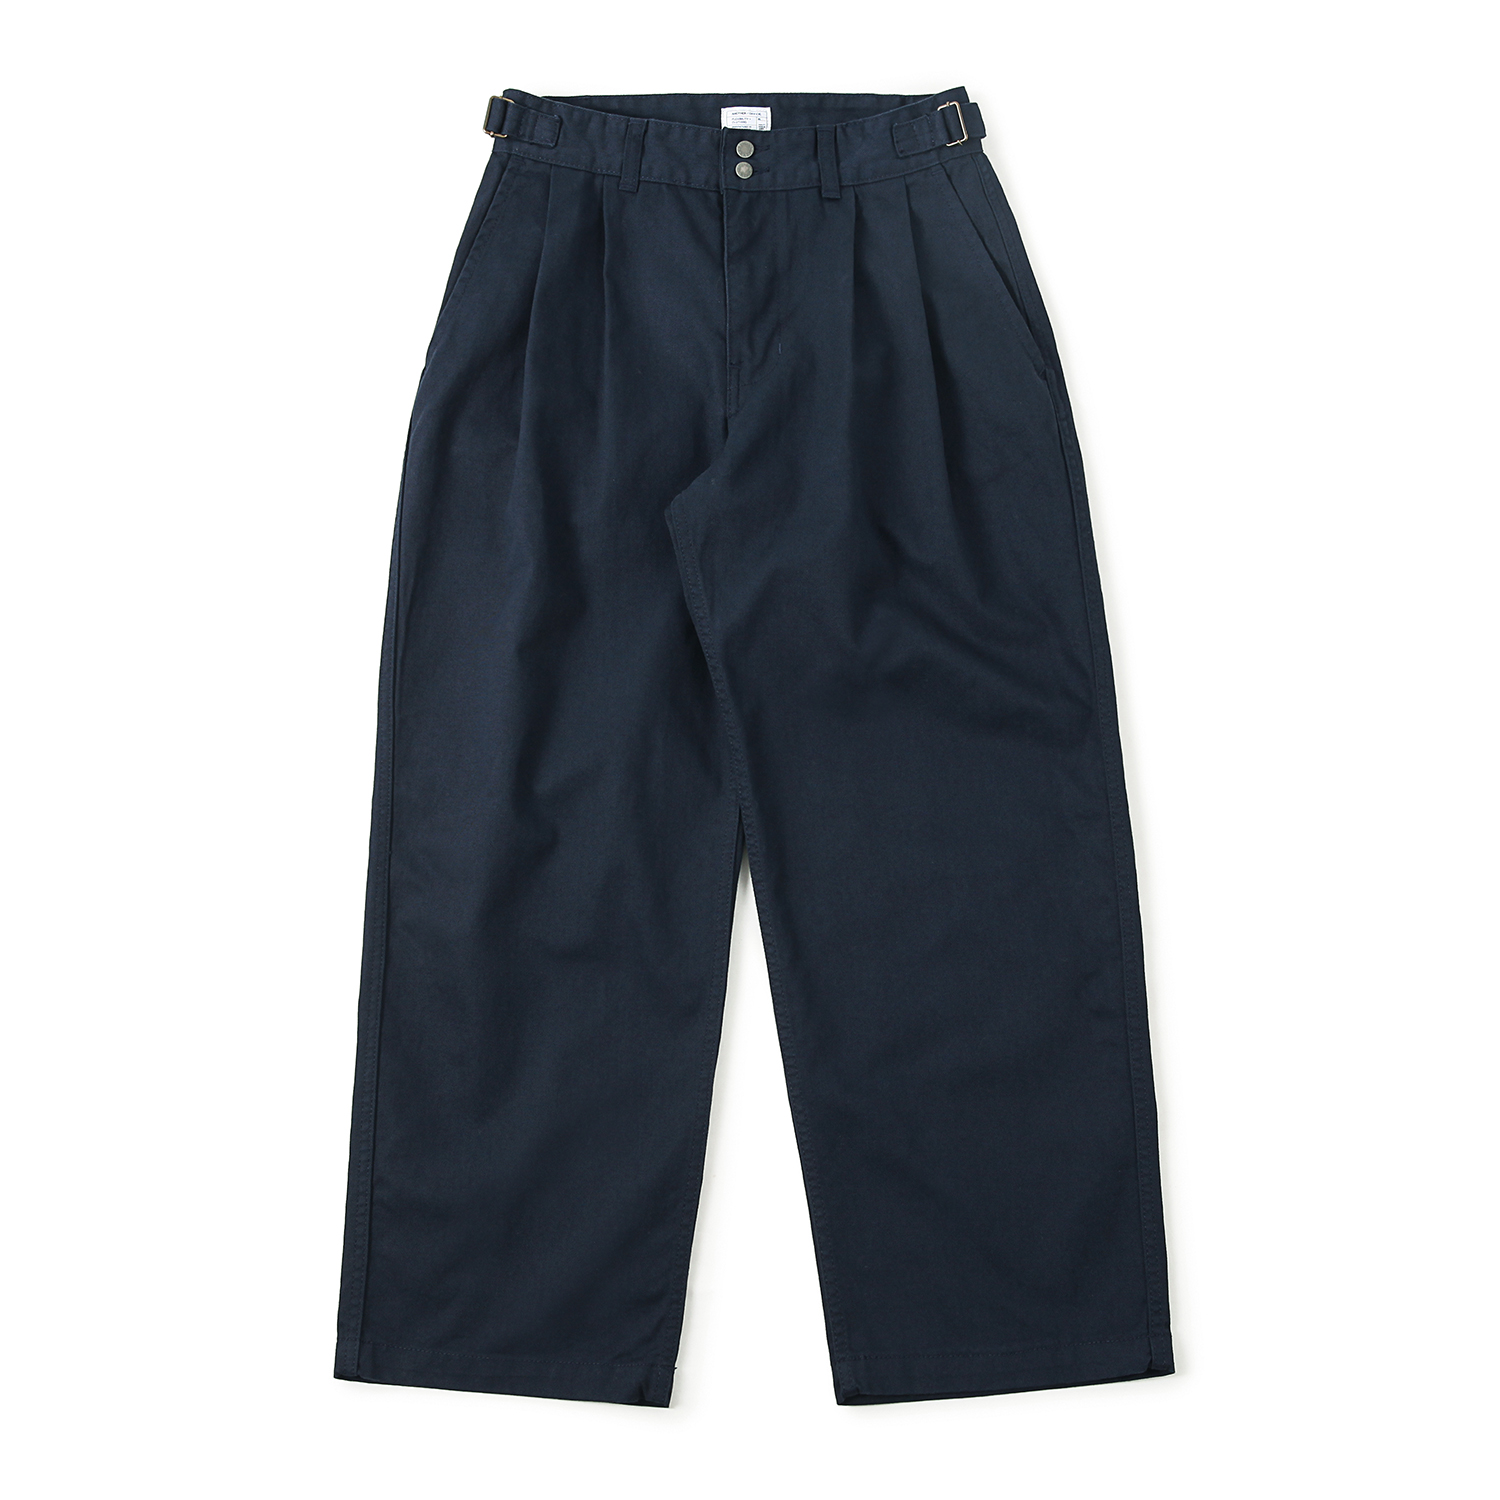 25% OFF_Homeboy Wide Two-Tuck Pants (Navy)